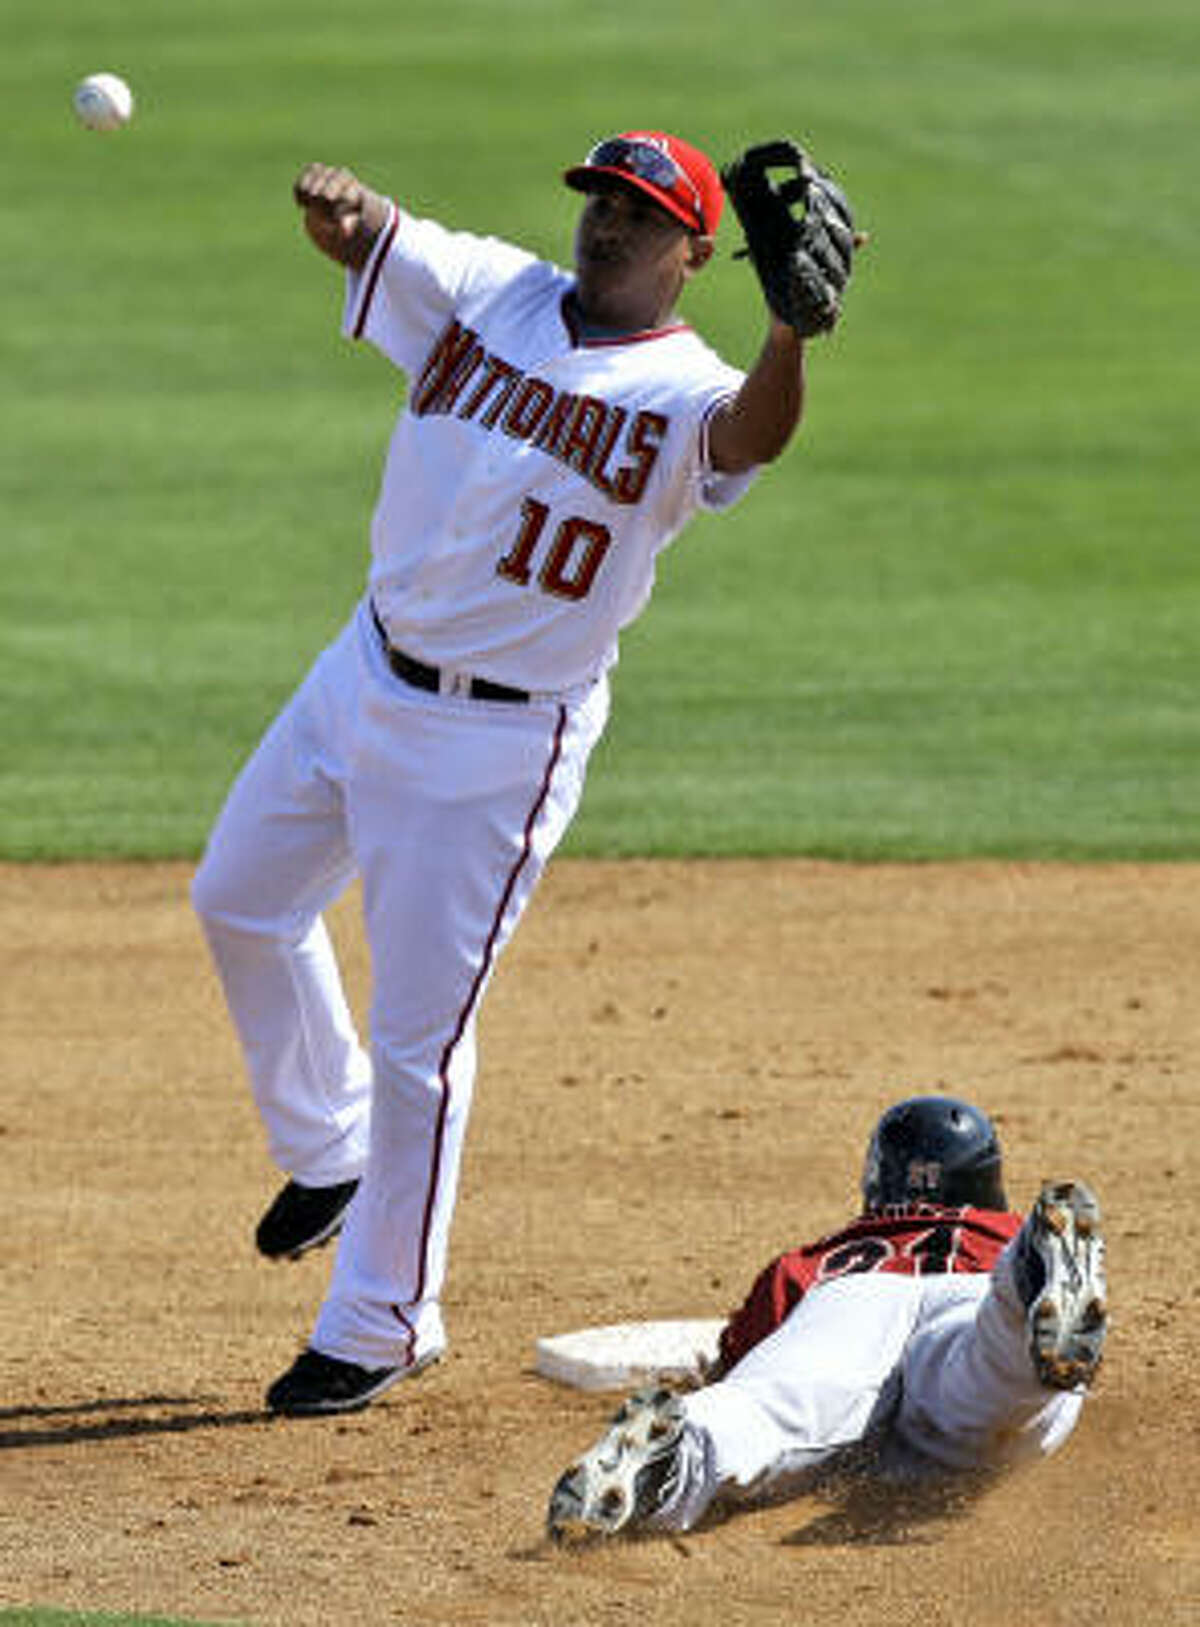 Washington Nationals second baseman Ronnie Belliard (10) reaches for the throw from catcher Jesus Flores as Houston Astros' Michael Bourn safely steals second base.